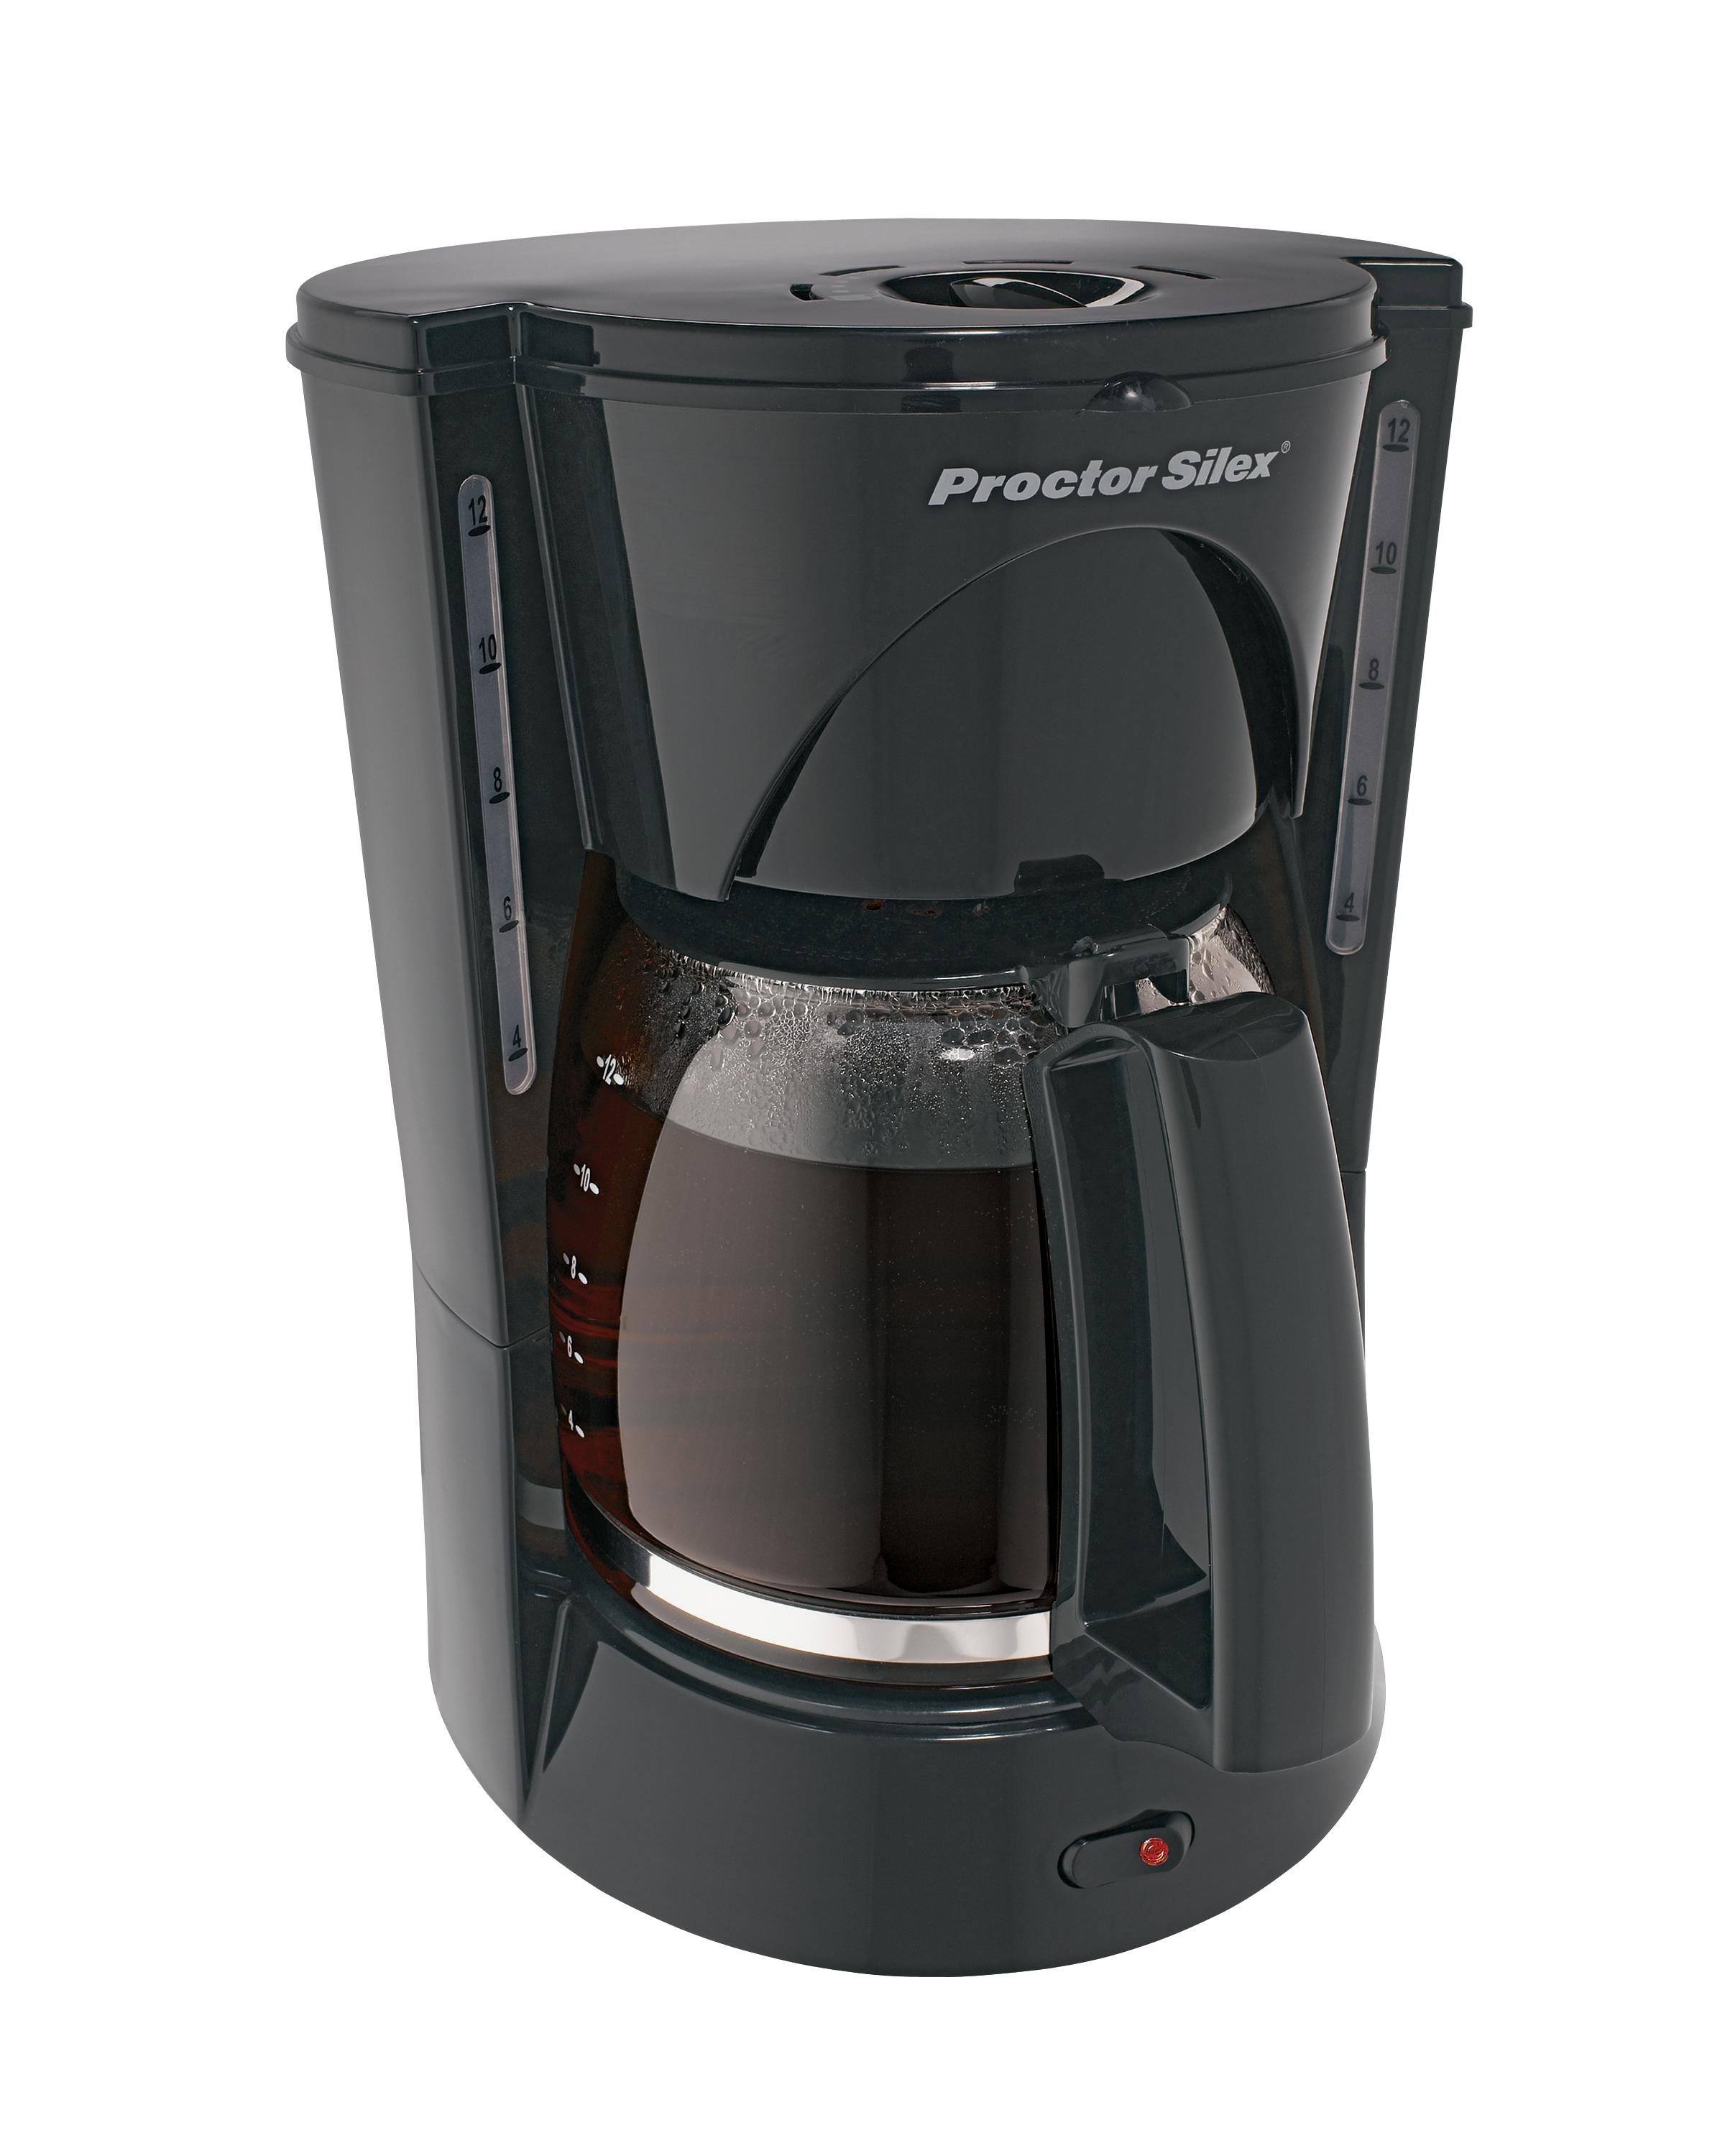 Amazon.com: Proctor-Silex Automatic Coffee Maker (48524): Proctor Silex Coffee Maker: Kitchen ...